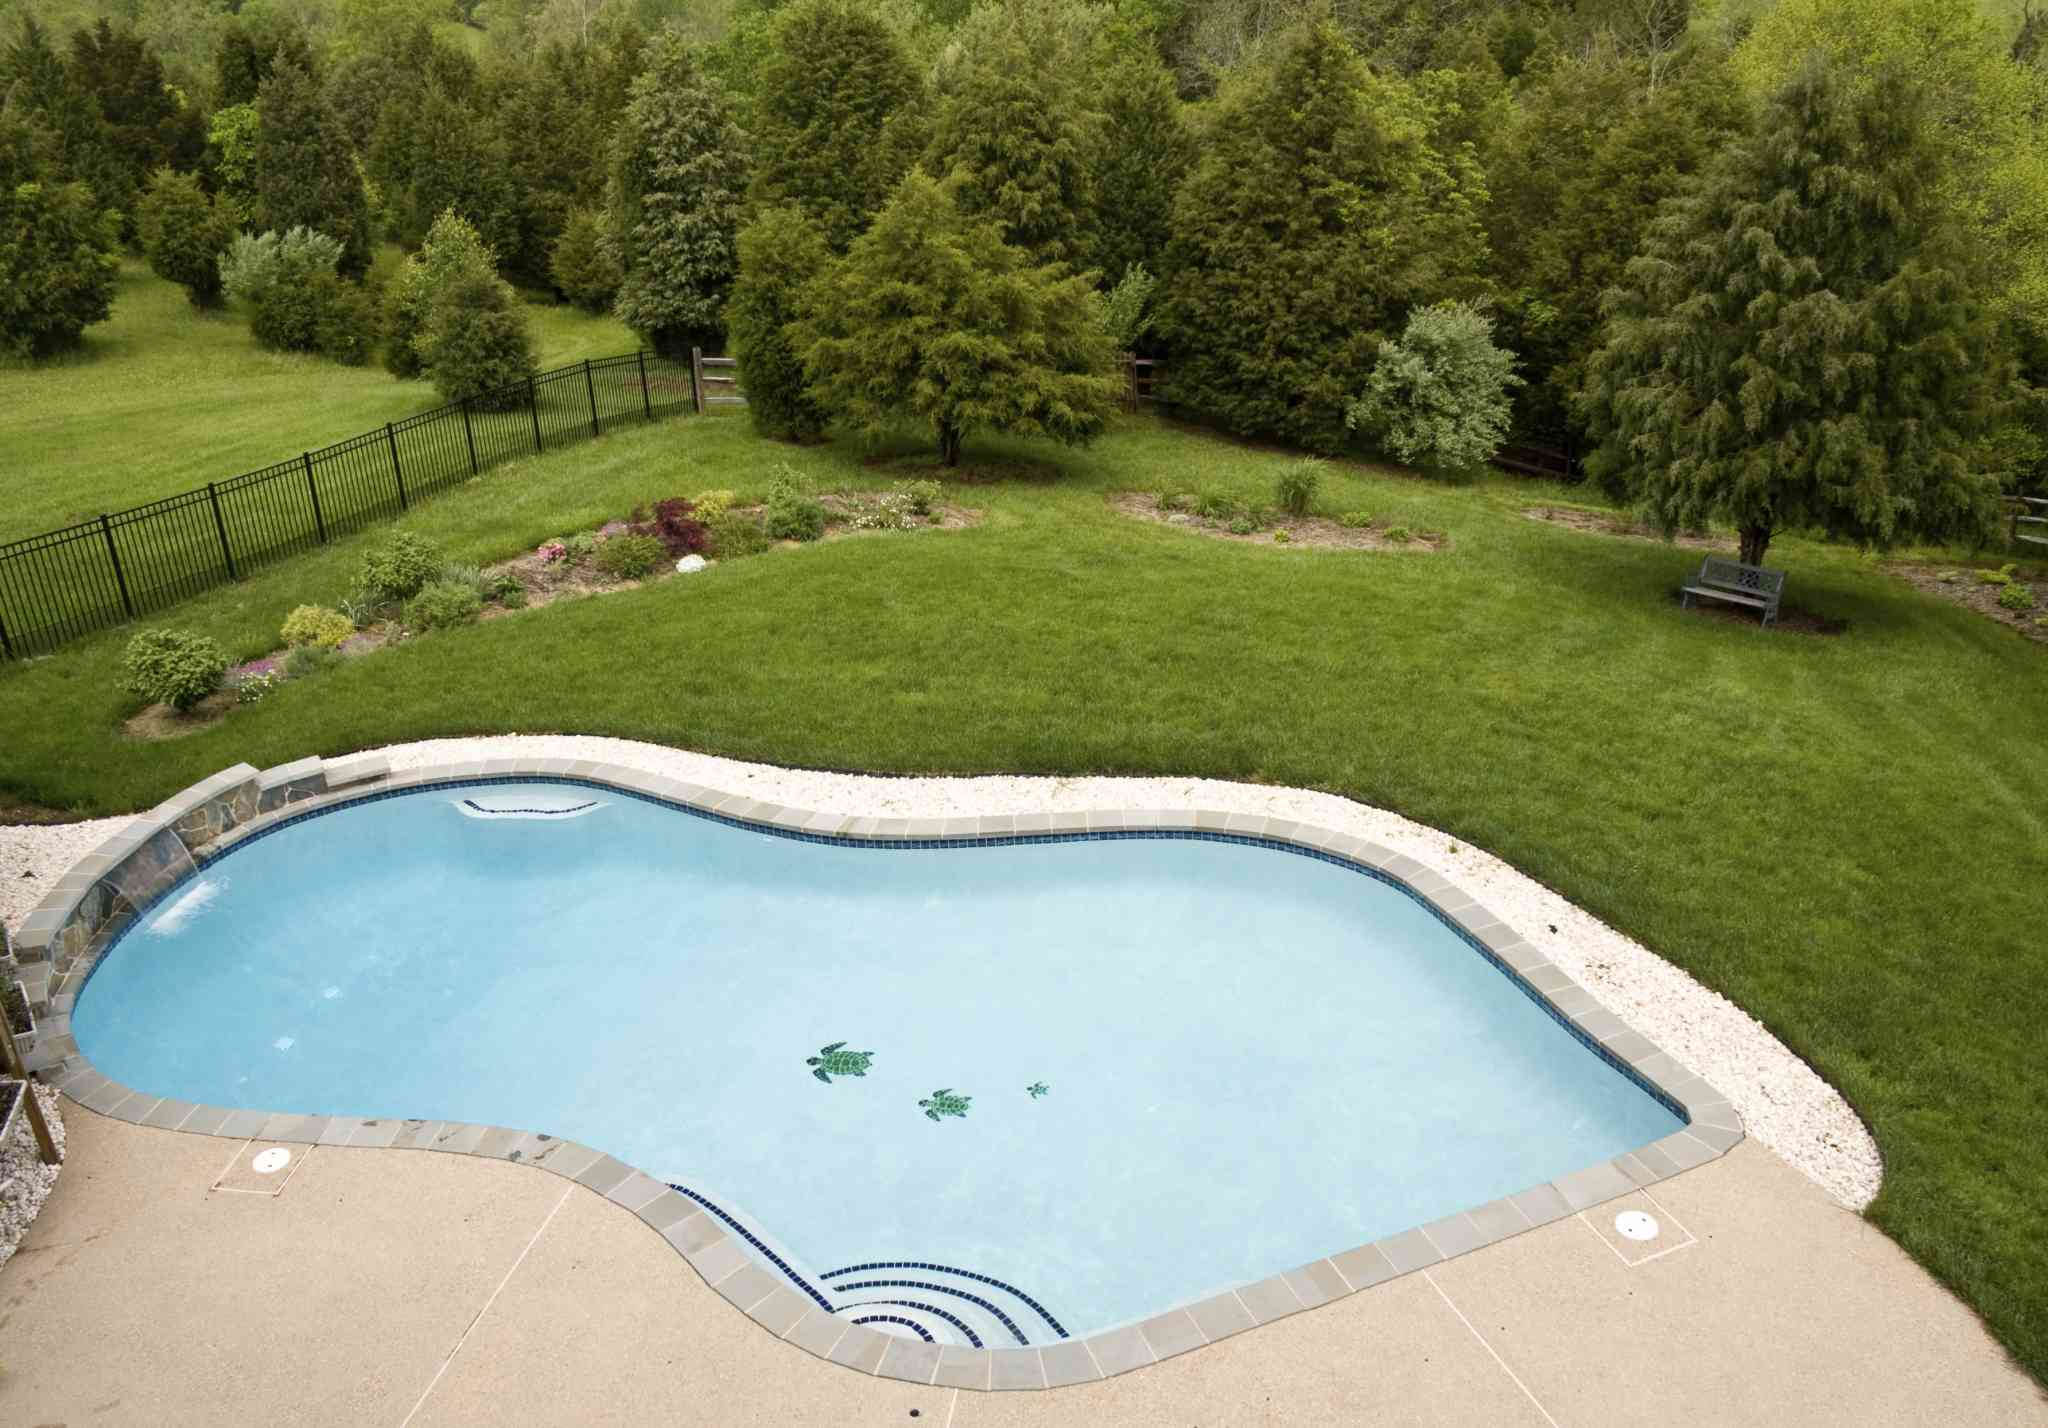 Three Gunite Pools - HFS Financial